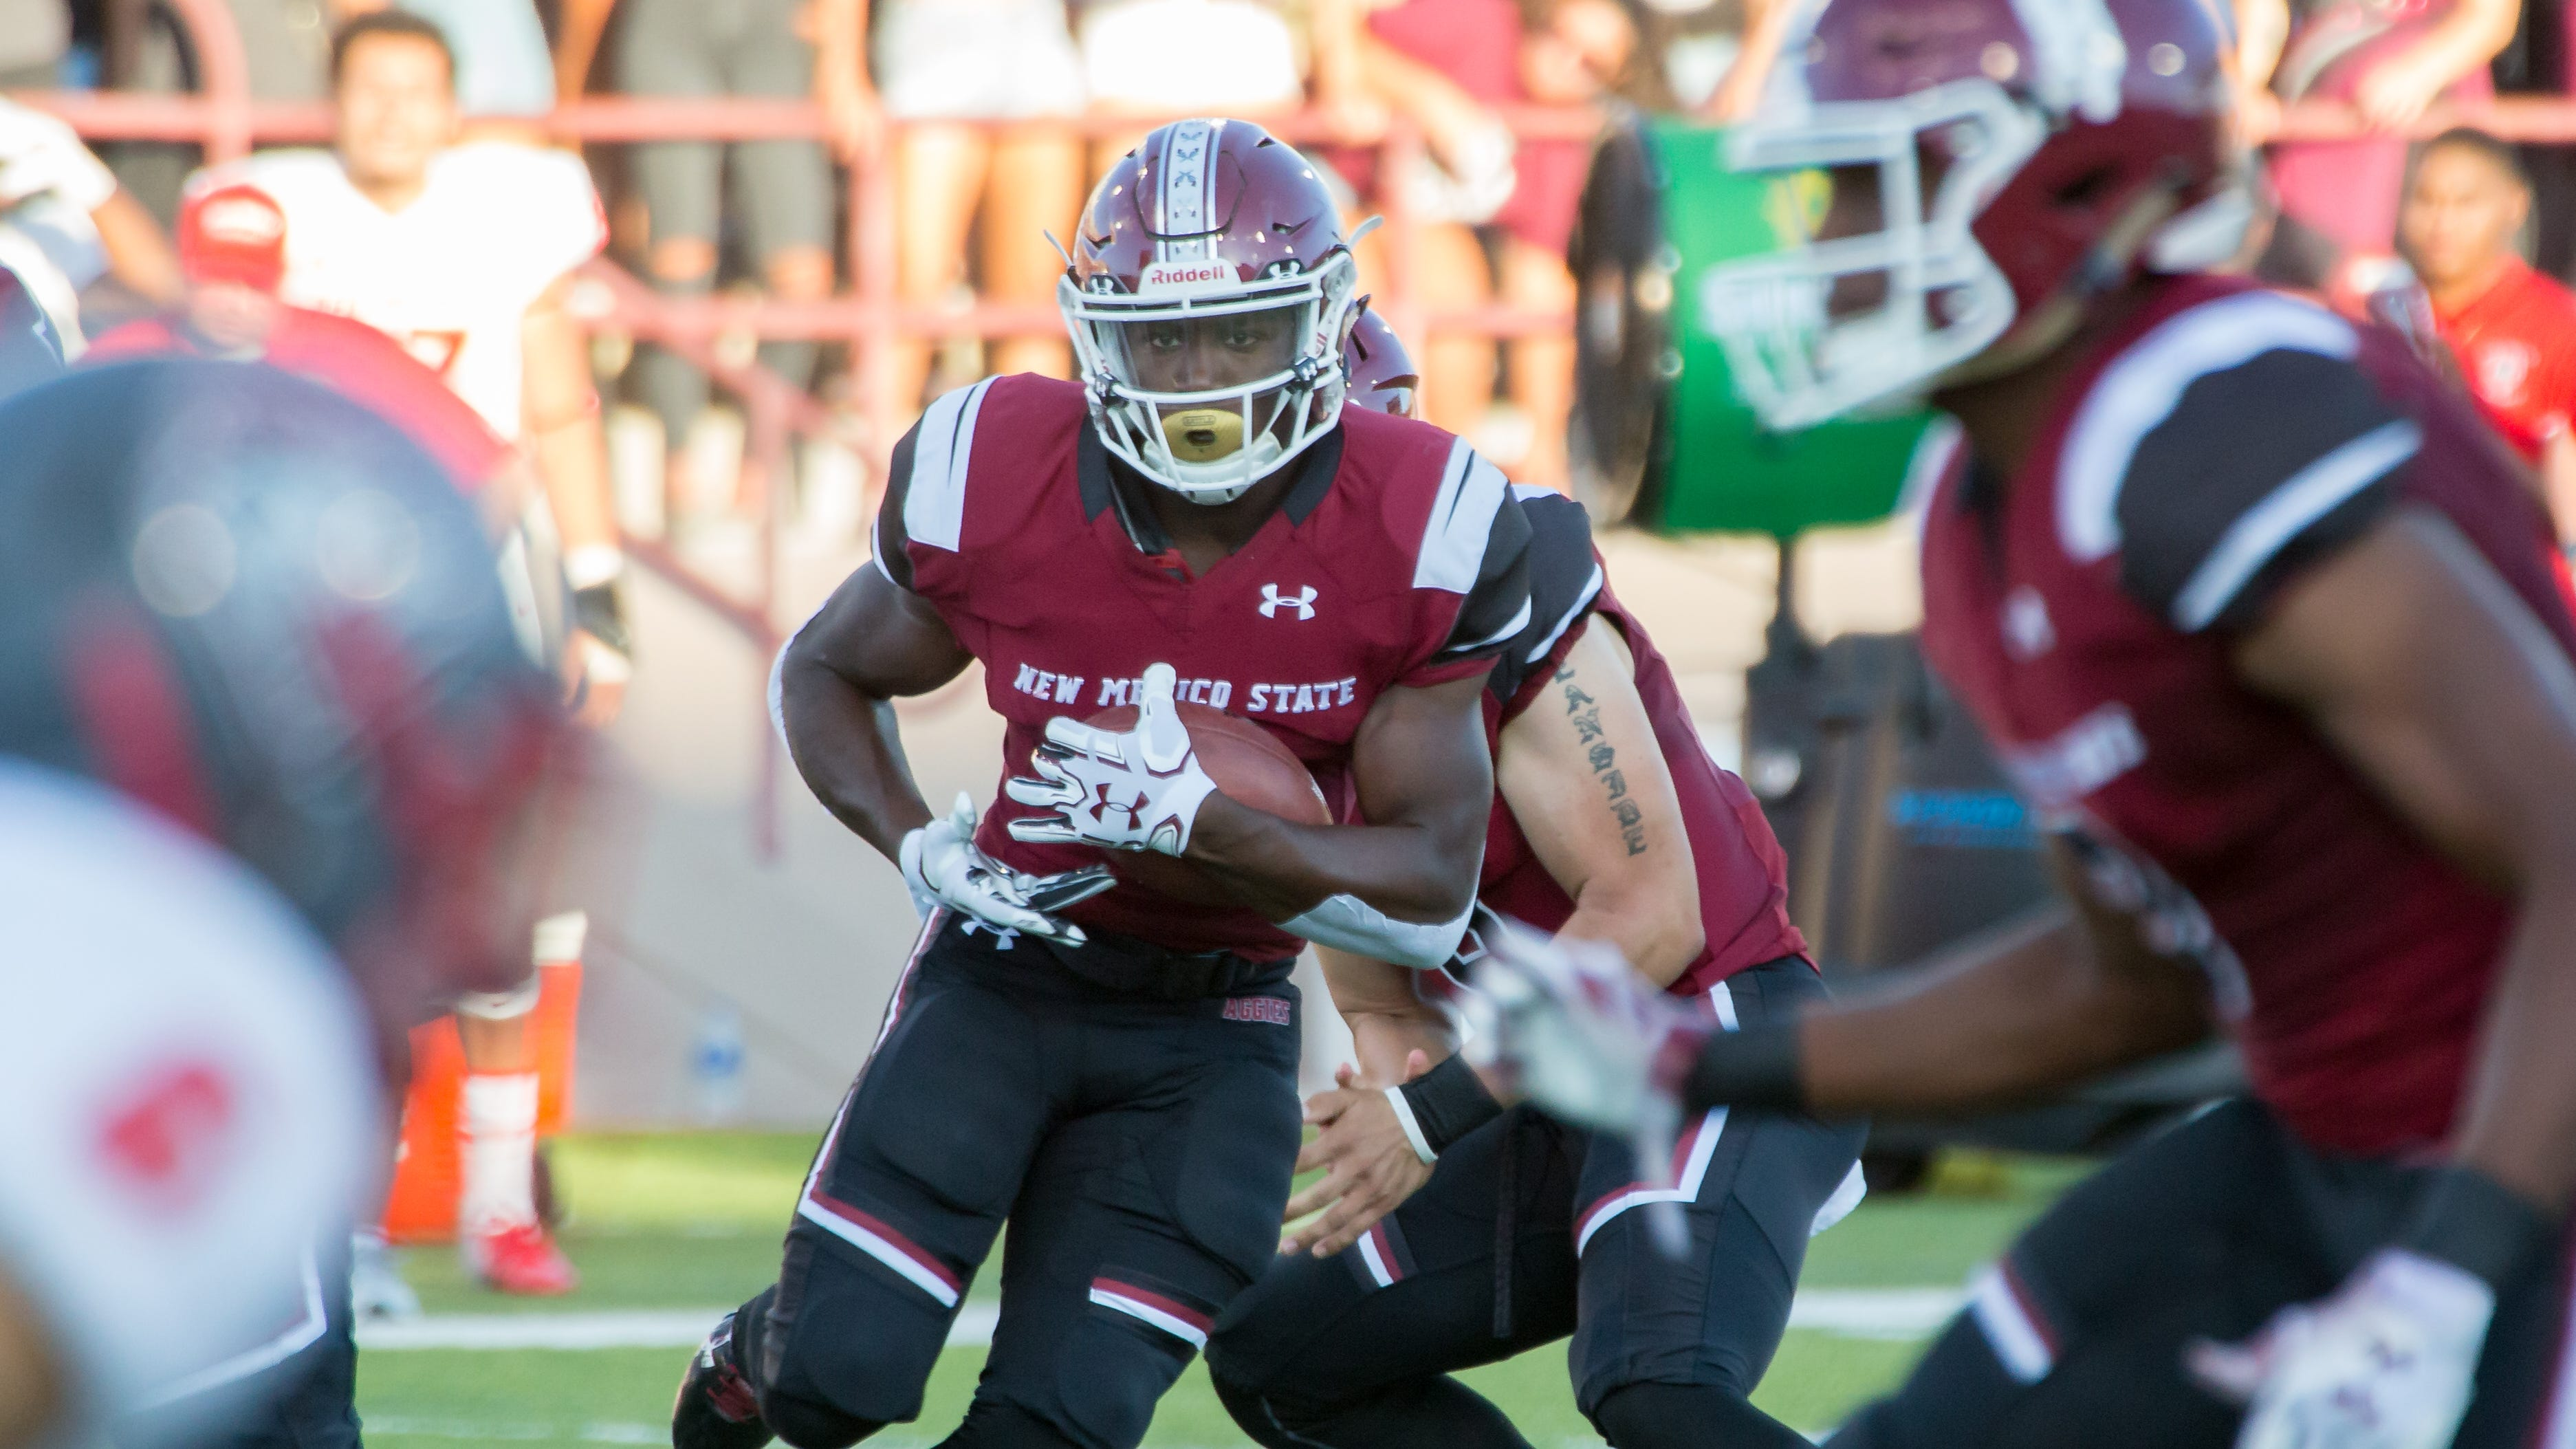 NMSU's Jason Huntley runs with the ball as UNM defender looks to make the stop on Saturday, September 15, 2018, at Aggie Memorial Stadium.